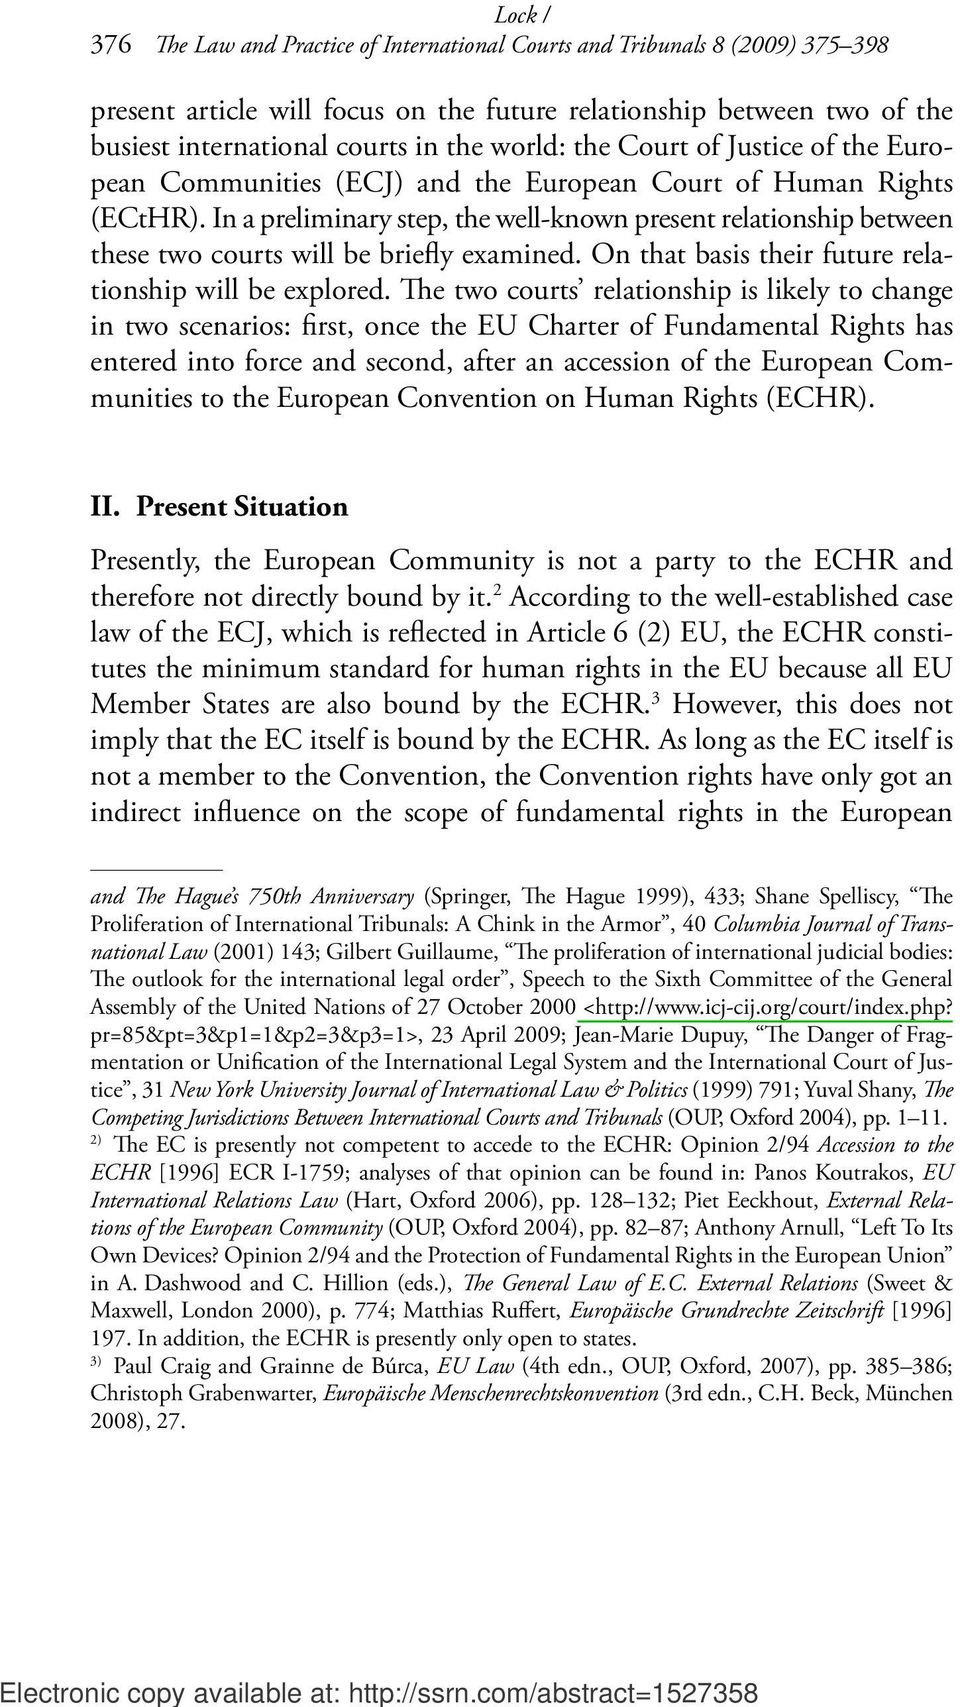 international courts in the world: the Court of Justice of the European Communities (ECJ) and the European Court of Human Rights (ECtHR).